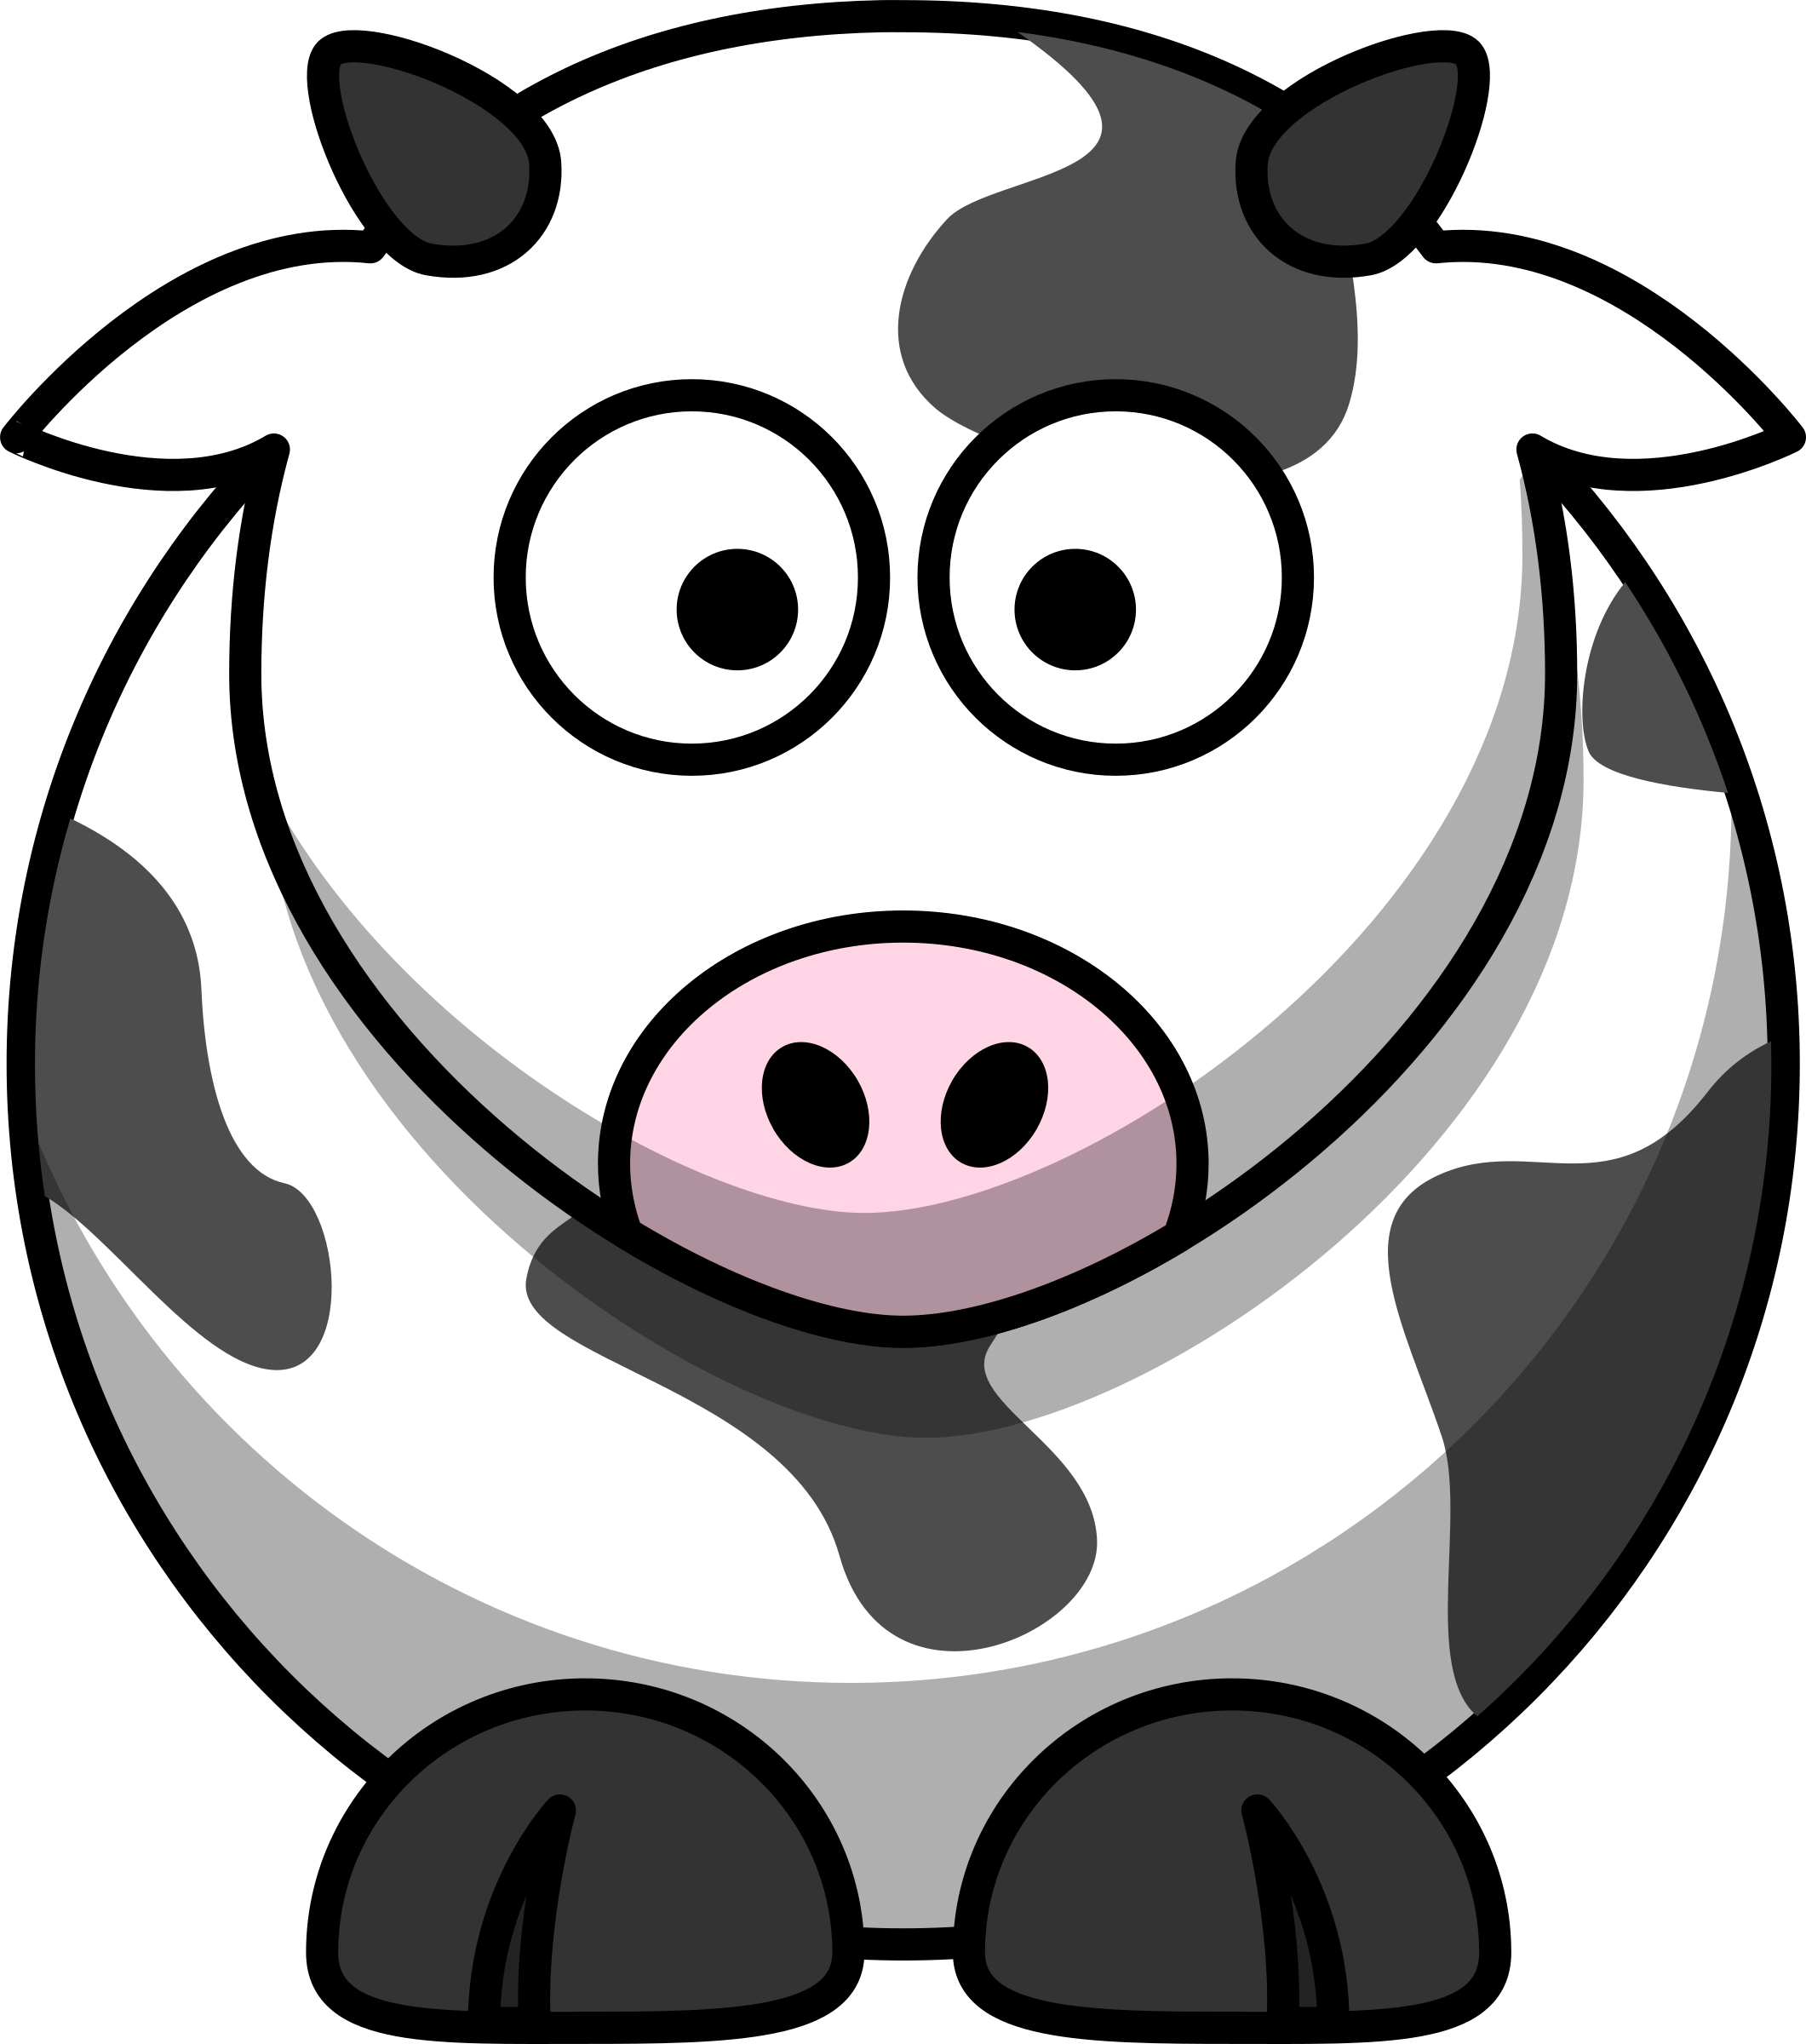 Cow clip art clear background. Clipart cartoon big image